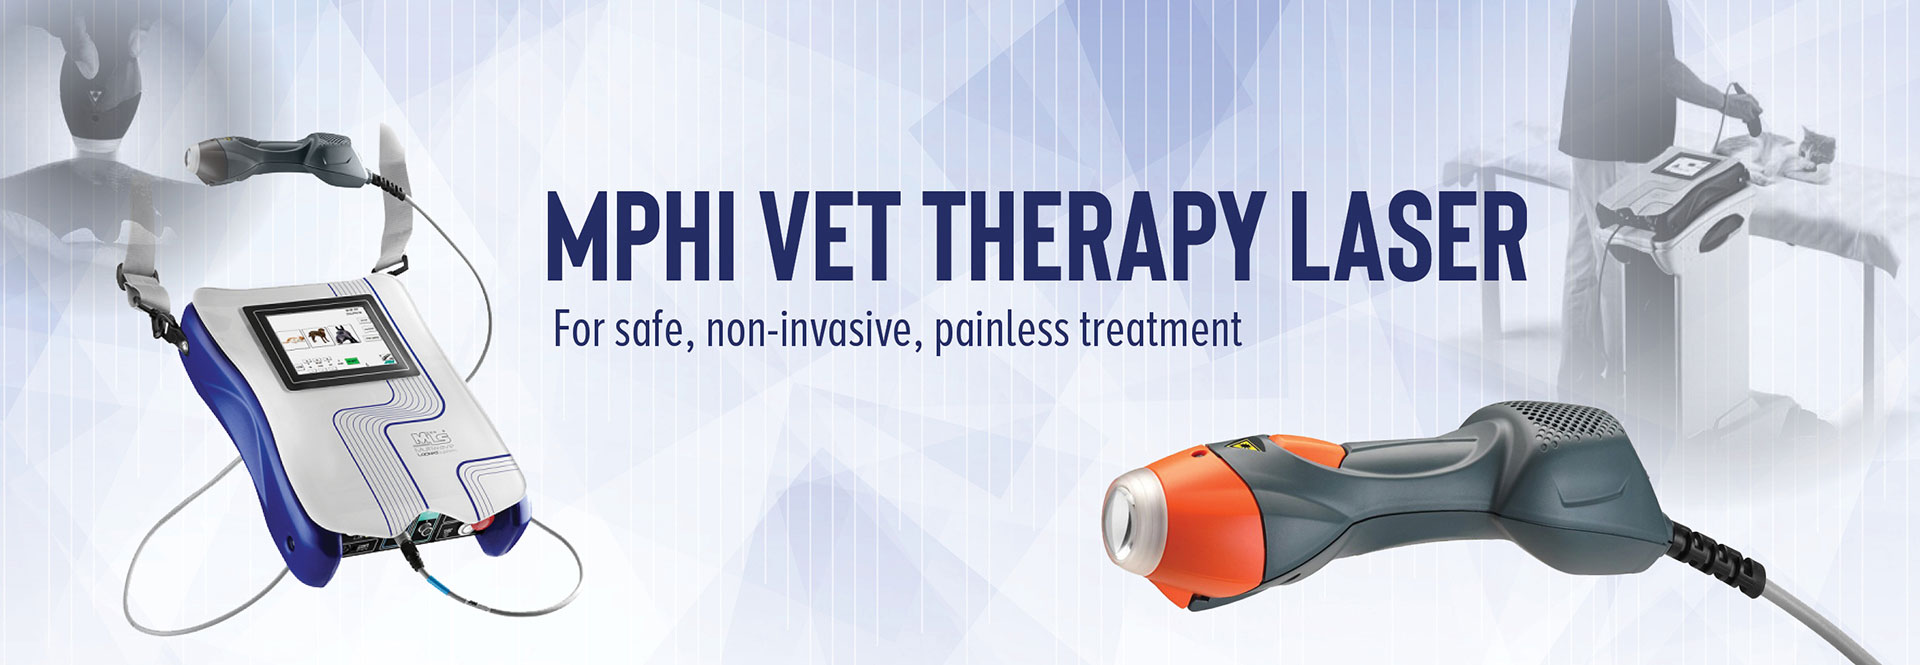 MPHI Vet Therapy Lasers